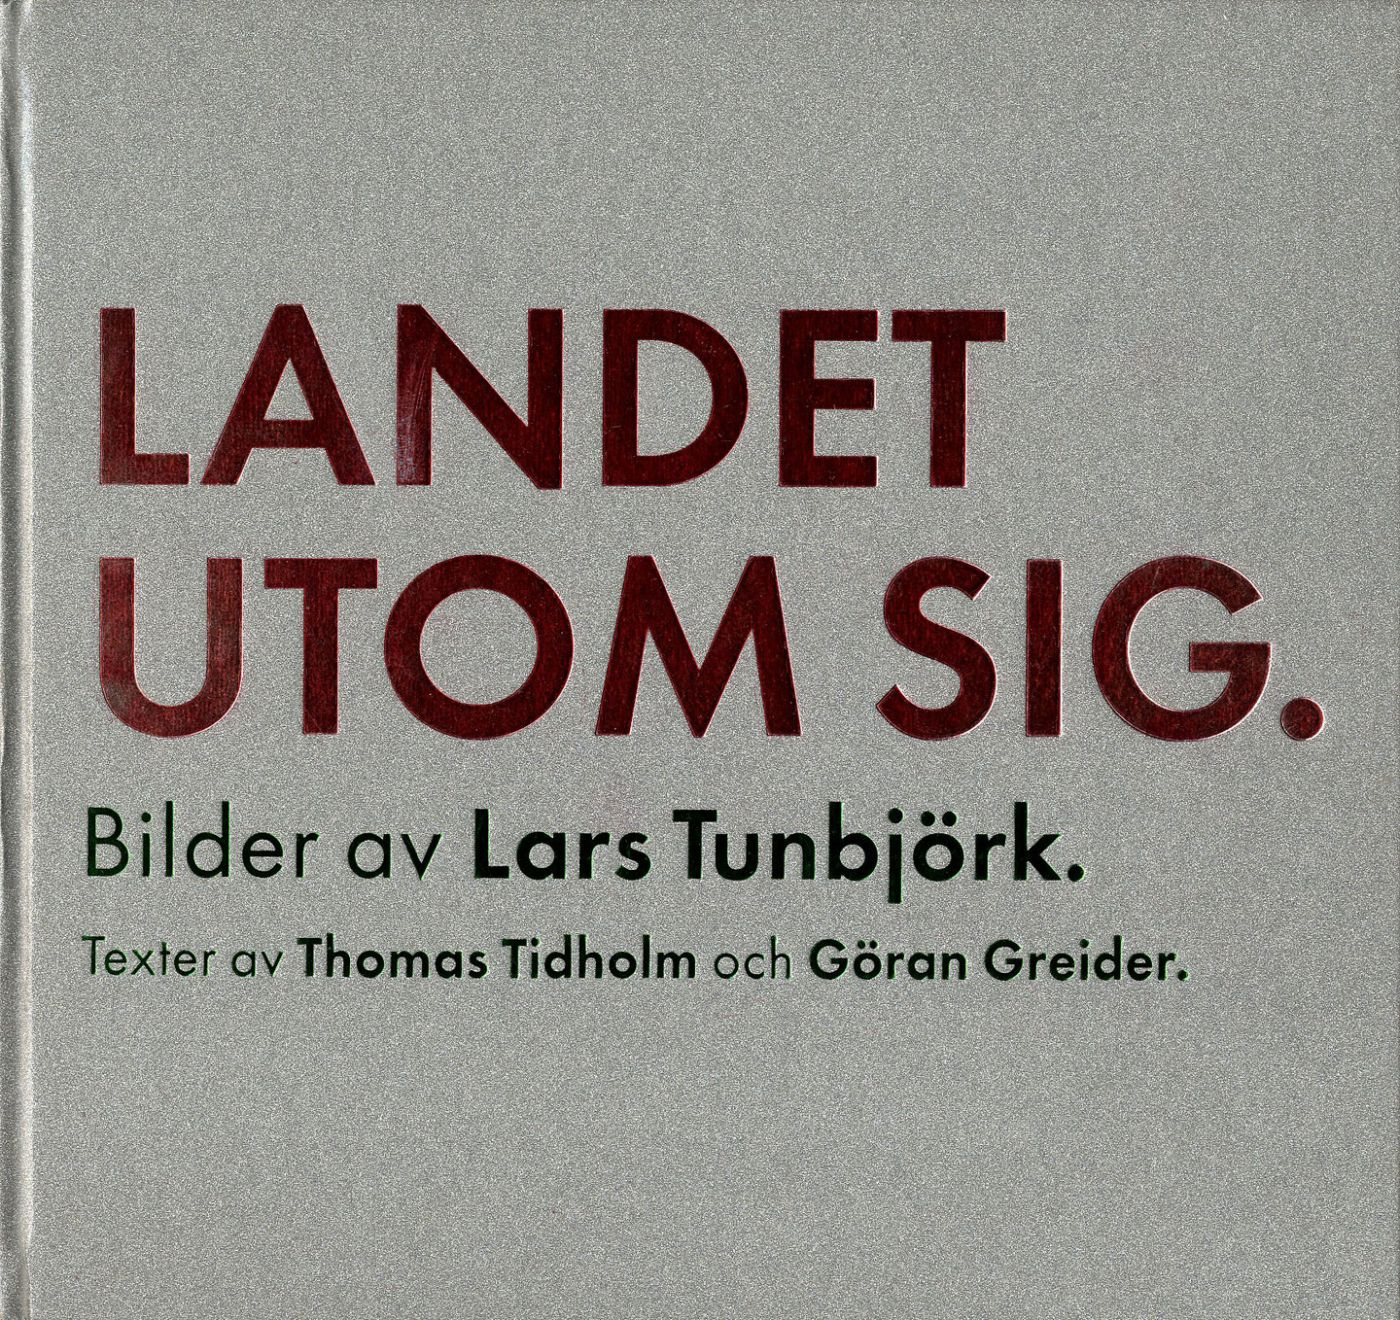 Lars Tunbjörk: Landet Utom Sig: Bilder från Sverige (Country Beside Itself: Pictures from Sweden)